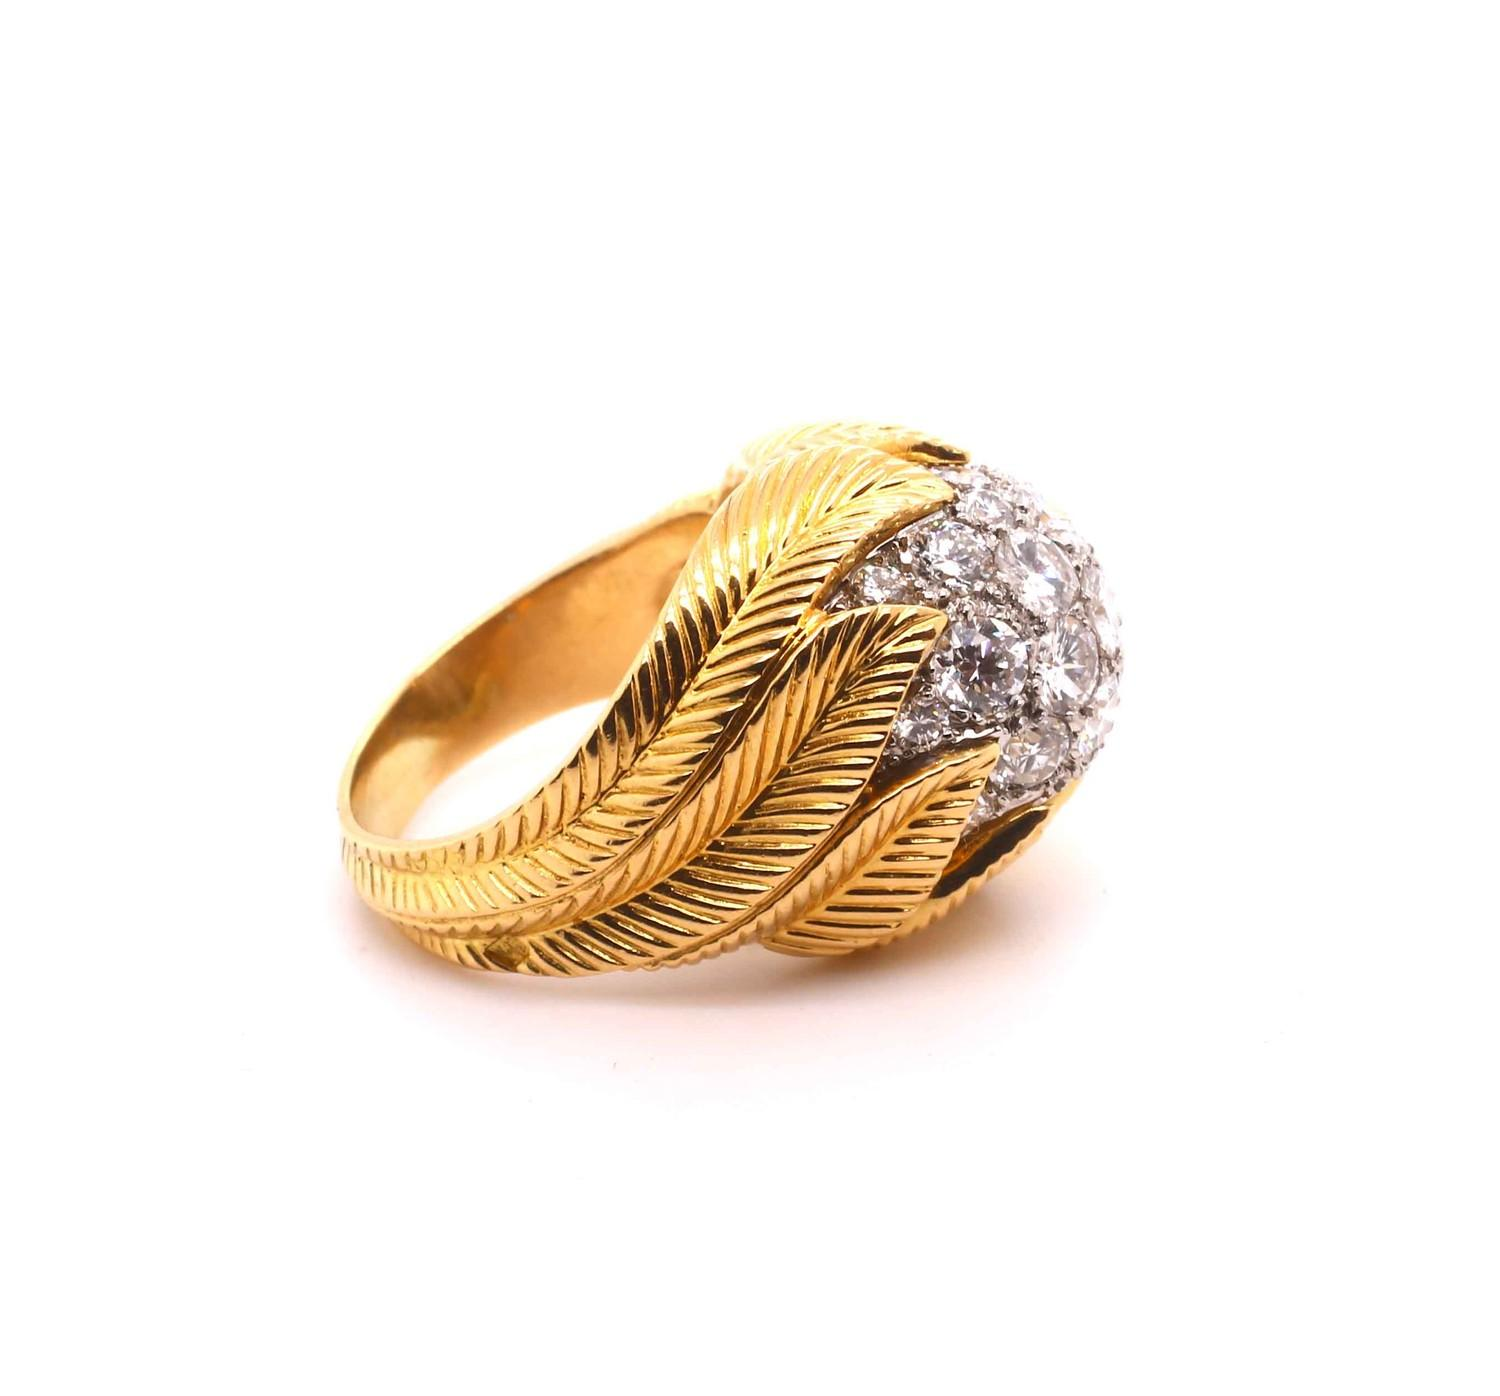 A Van Cleef & Aprel Cocktail Ring with a Pave set diamond flame ring mounted in an intricate